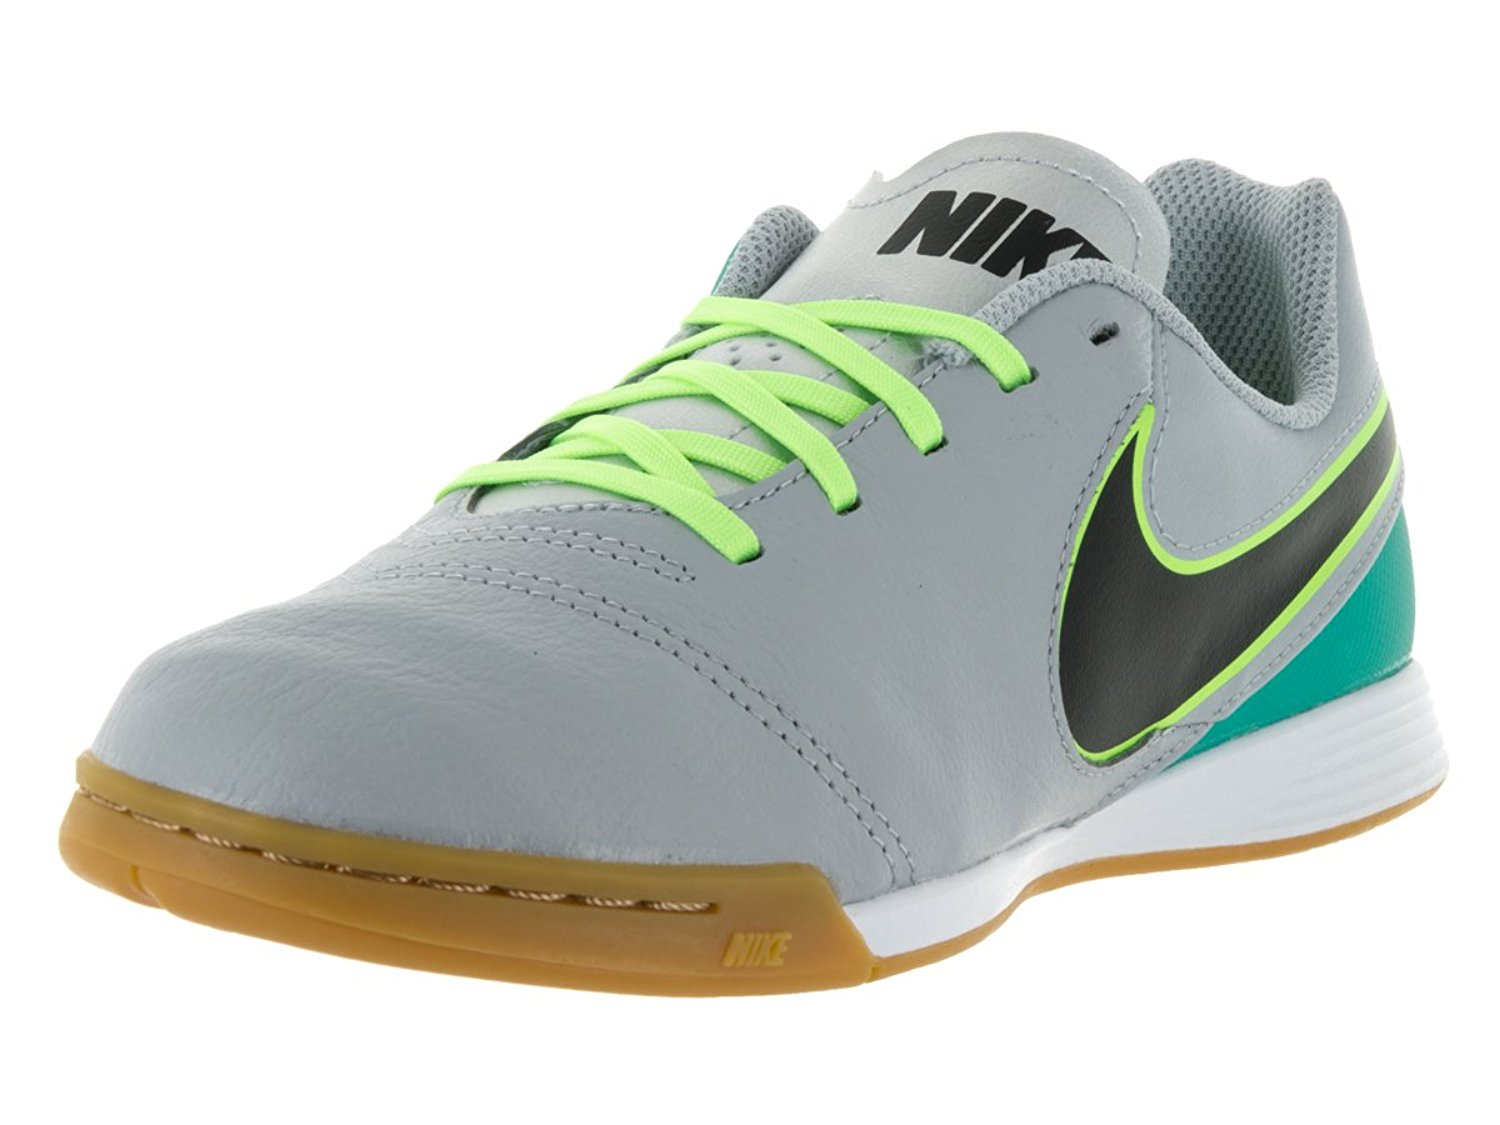 6cb0b506e48 Buy Nike Youth Tiempo Legend VI Indoor Shoes in Cheap Price on ...